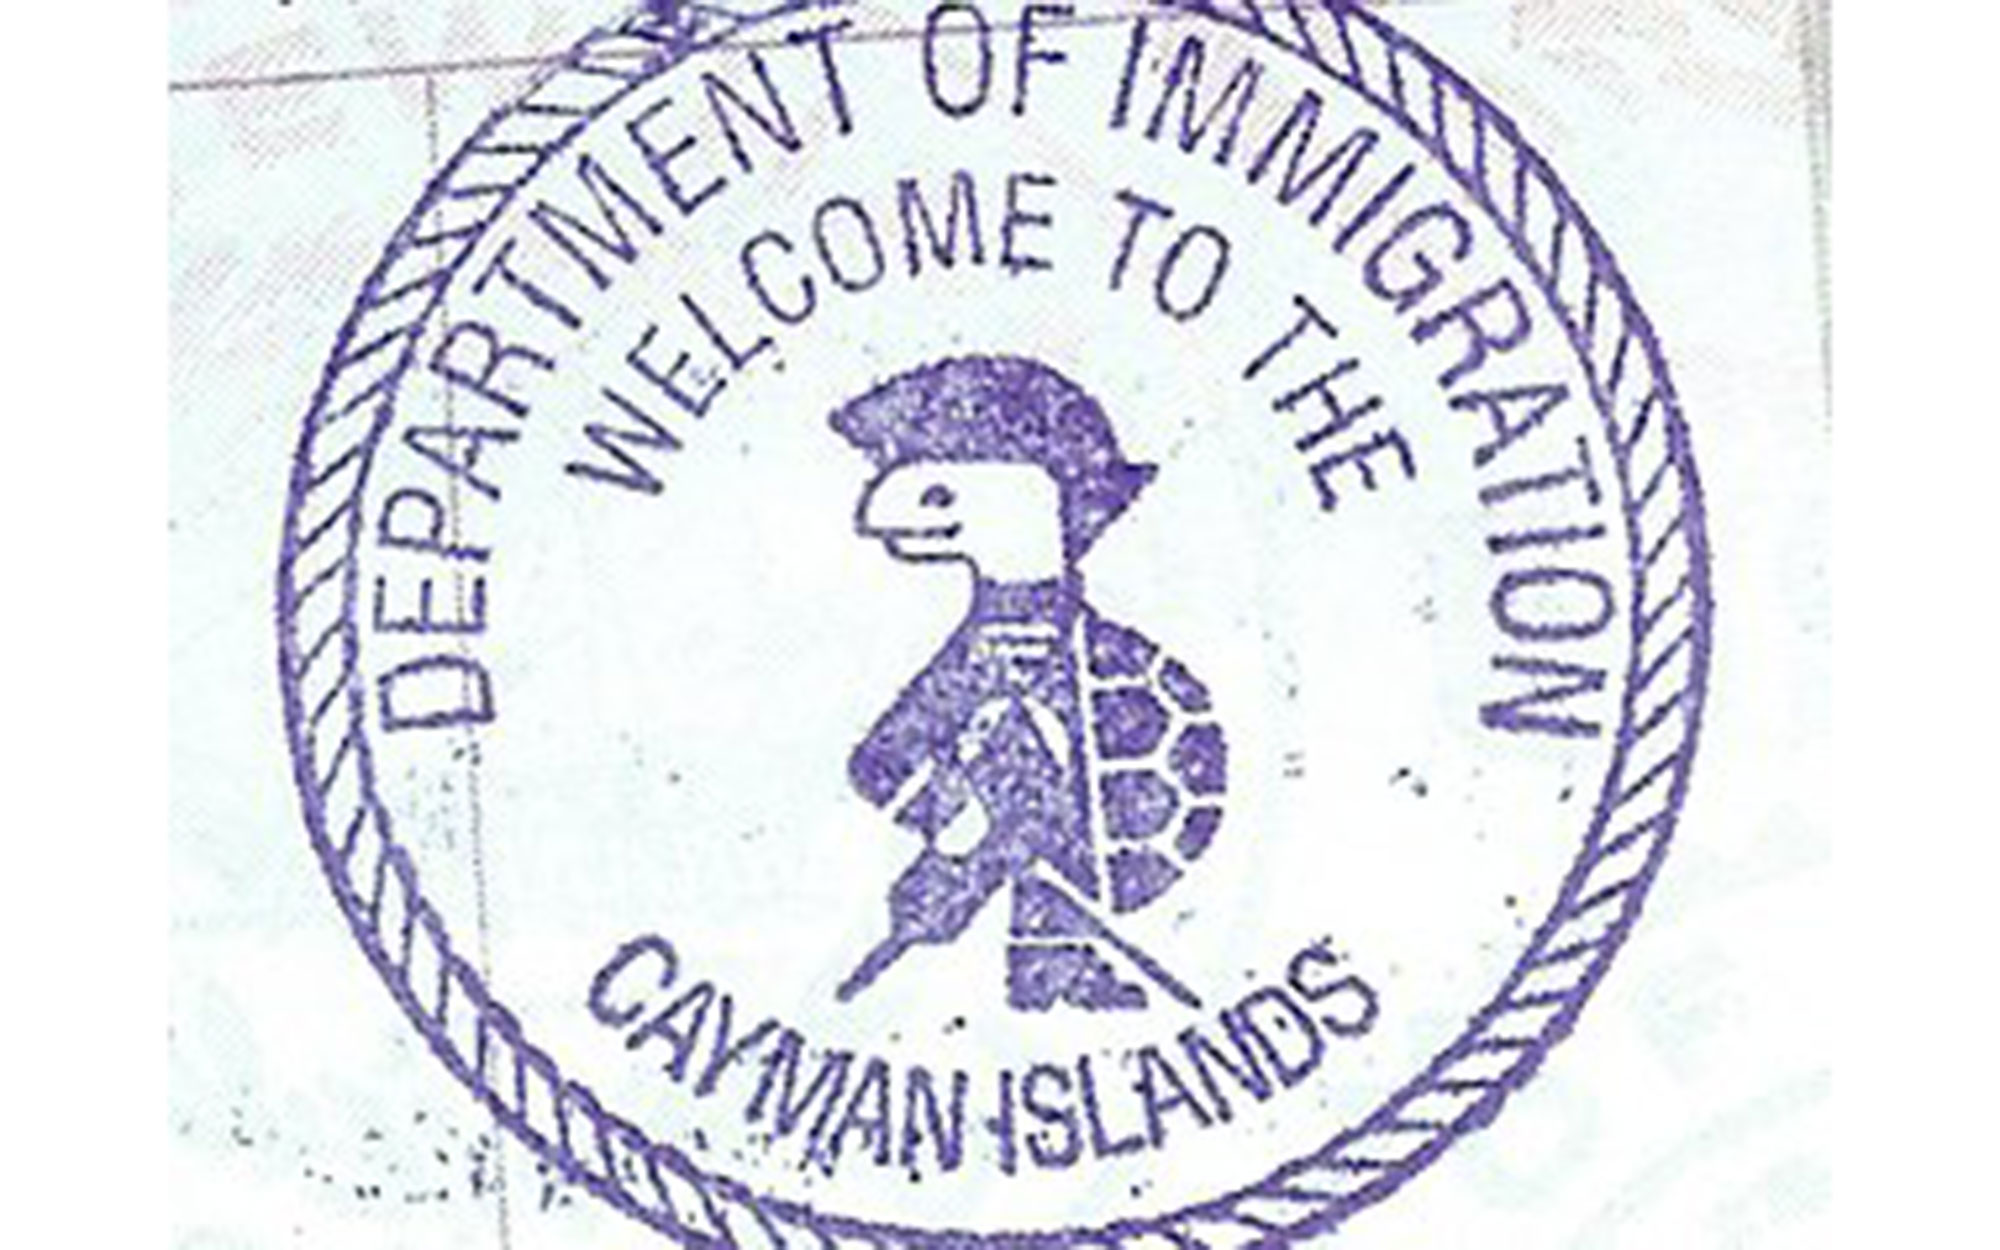 10 Coolest Passport Stamps in the World: Cayman Islands